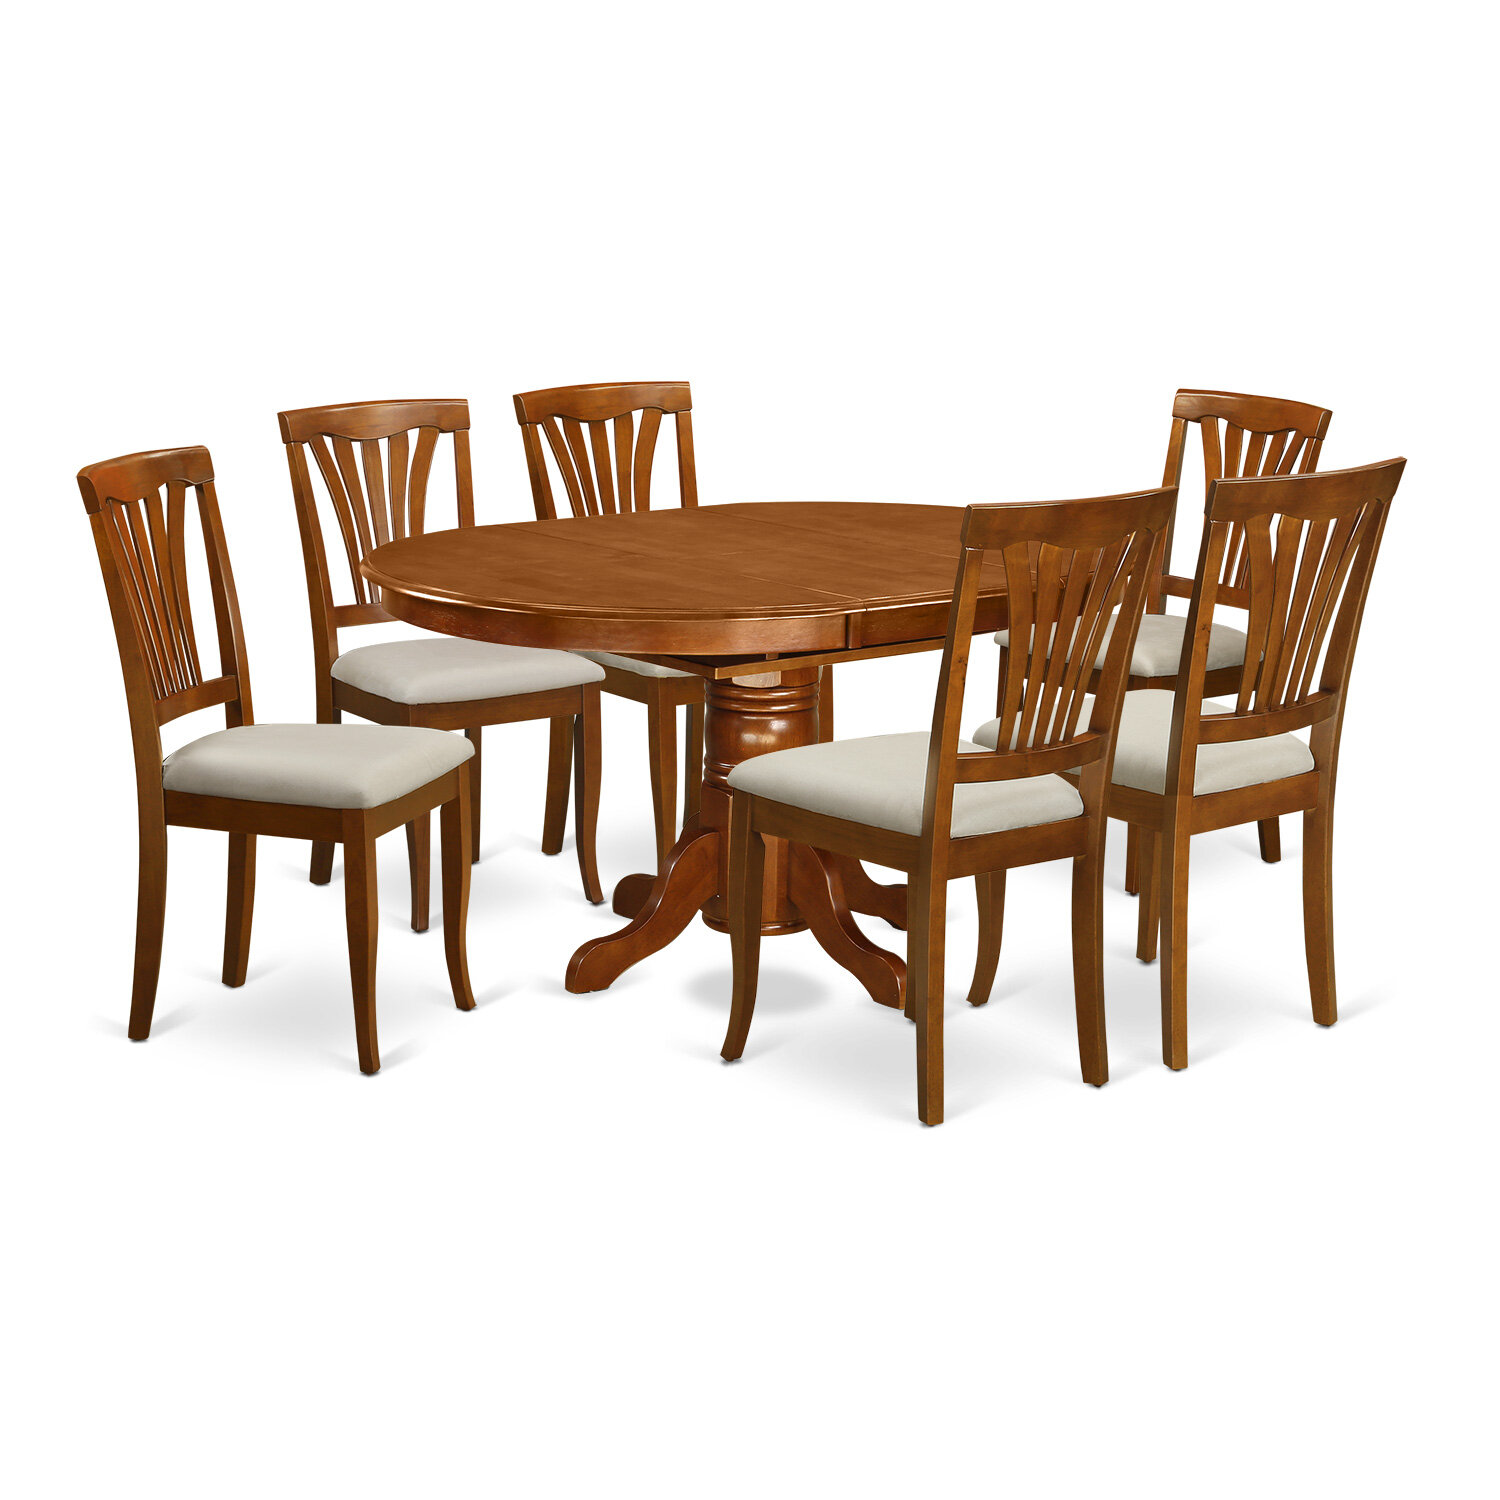 August Grove Spurling 7 Piece Extendable Solid Wood Dining Set In Saddle Brown Reviews Wayfair